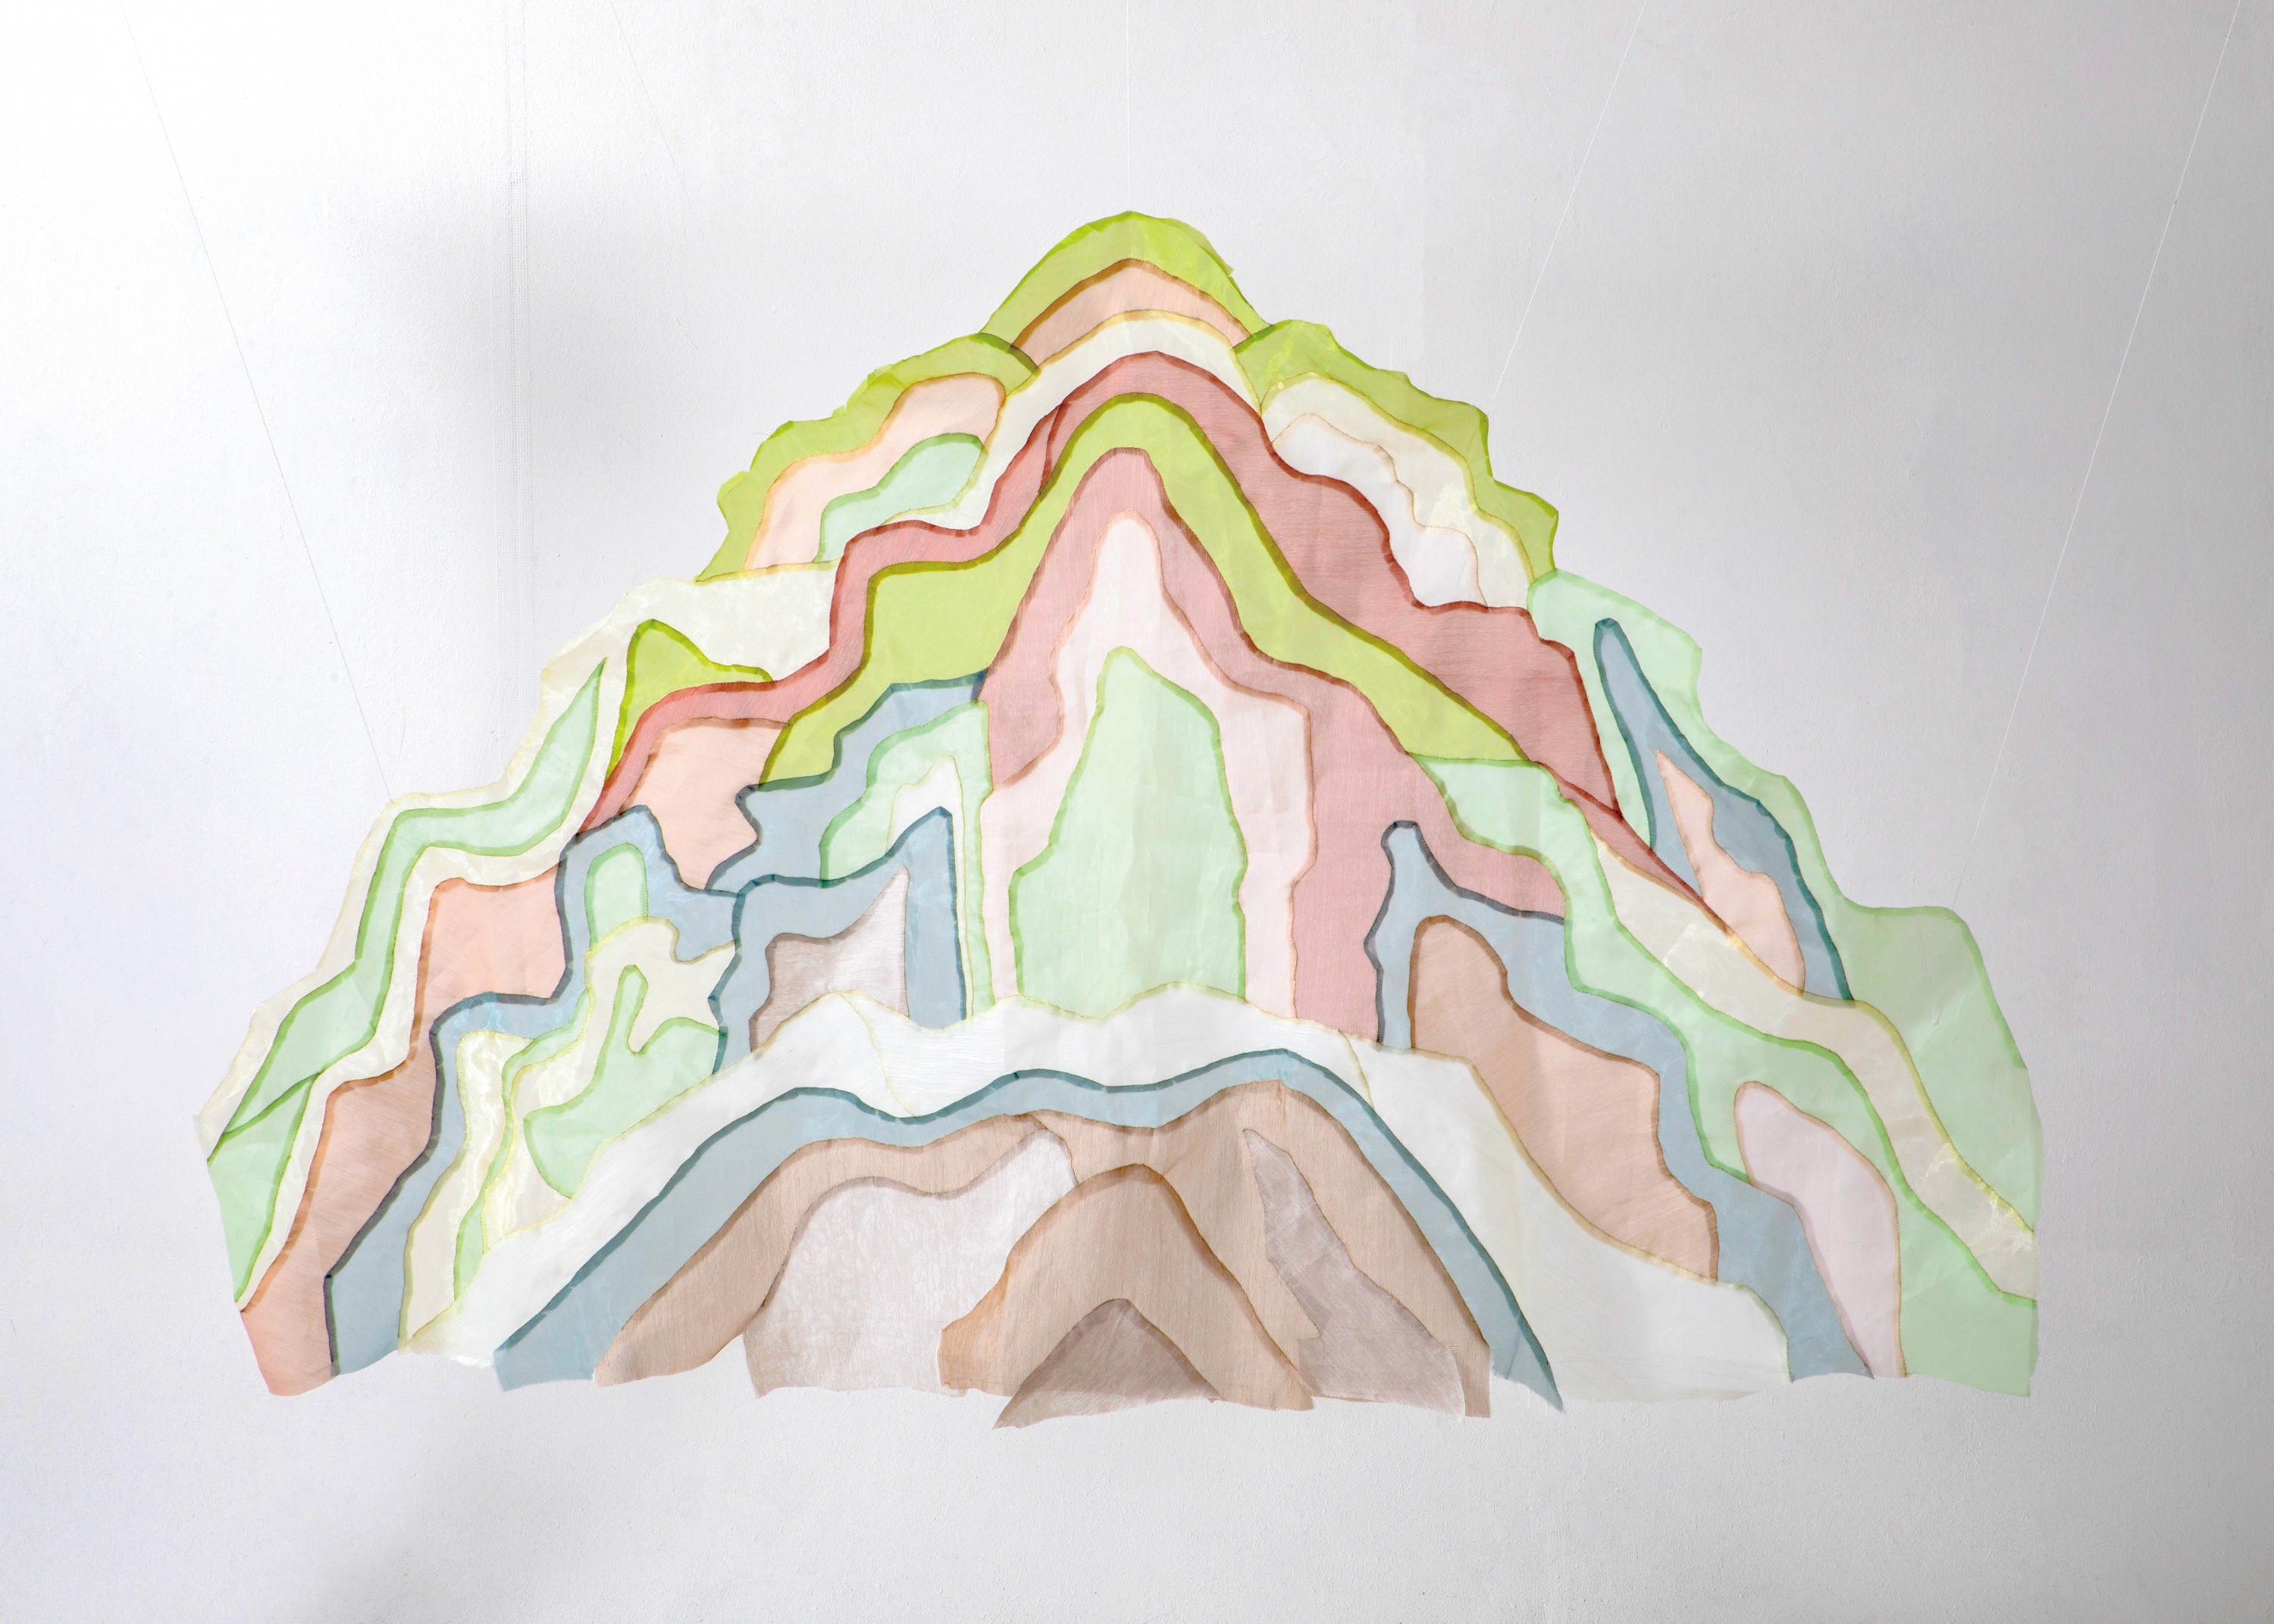 A mountain peak of pink, yellow, green, and blue pieces of fabric.